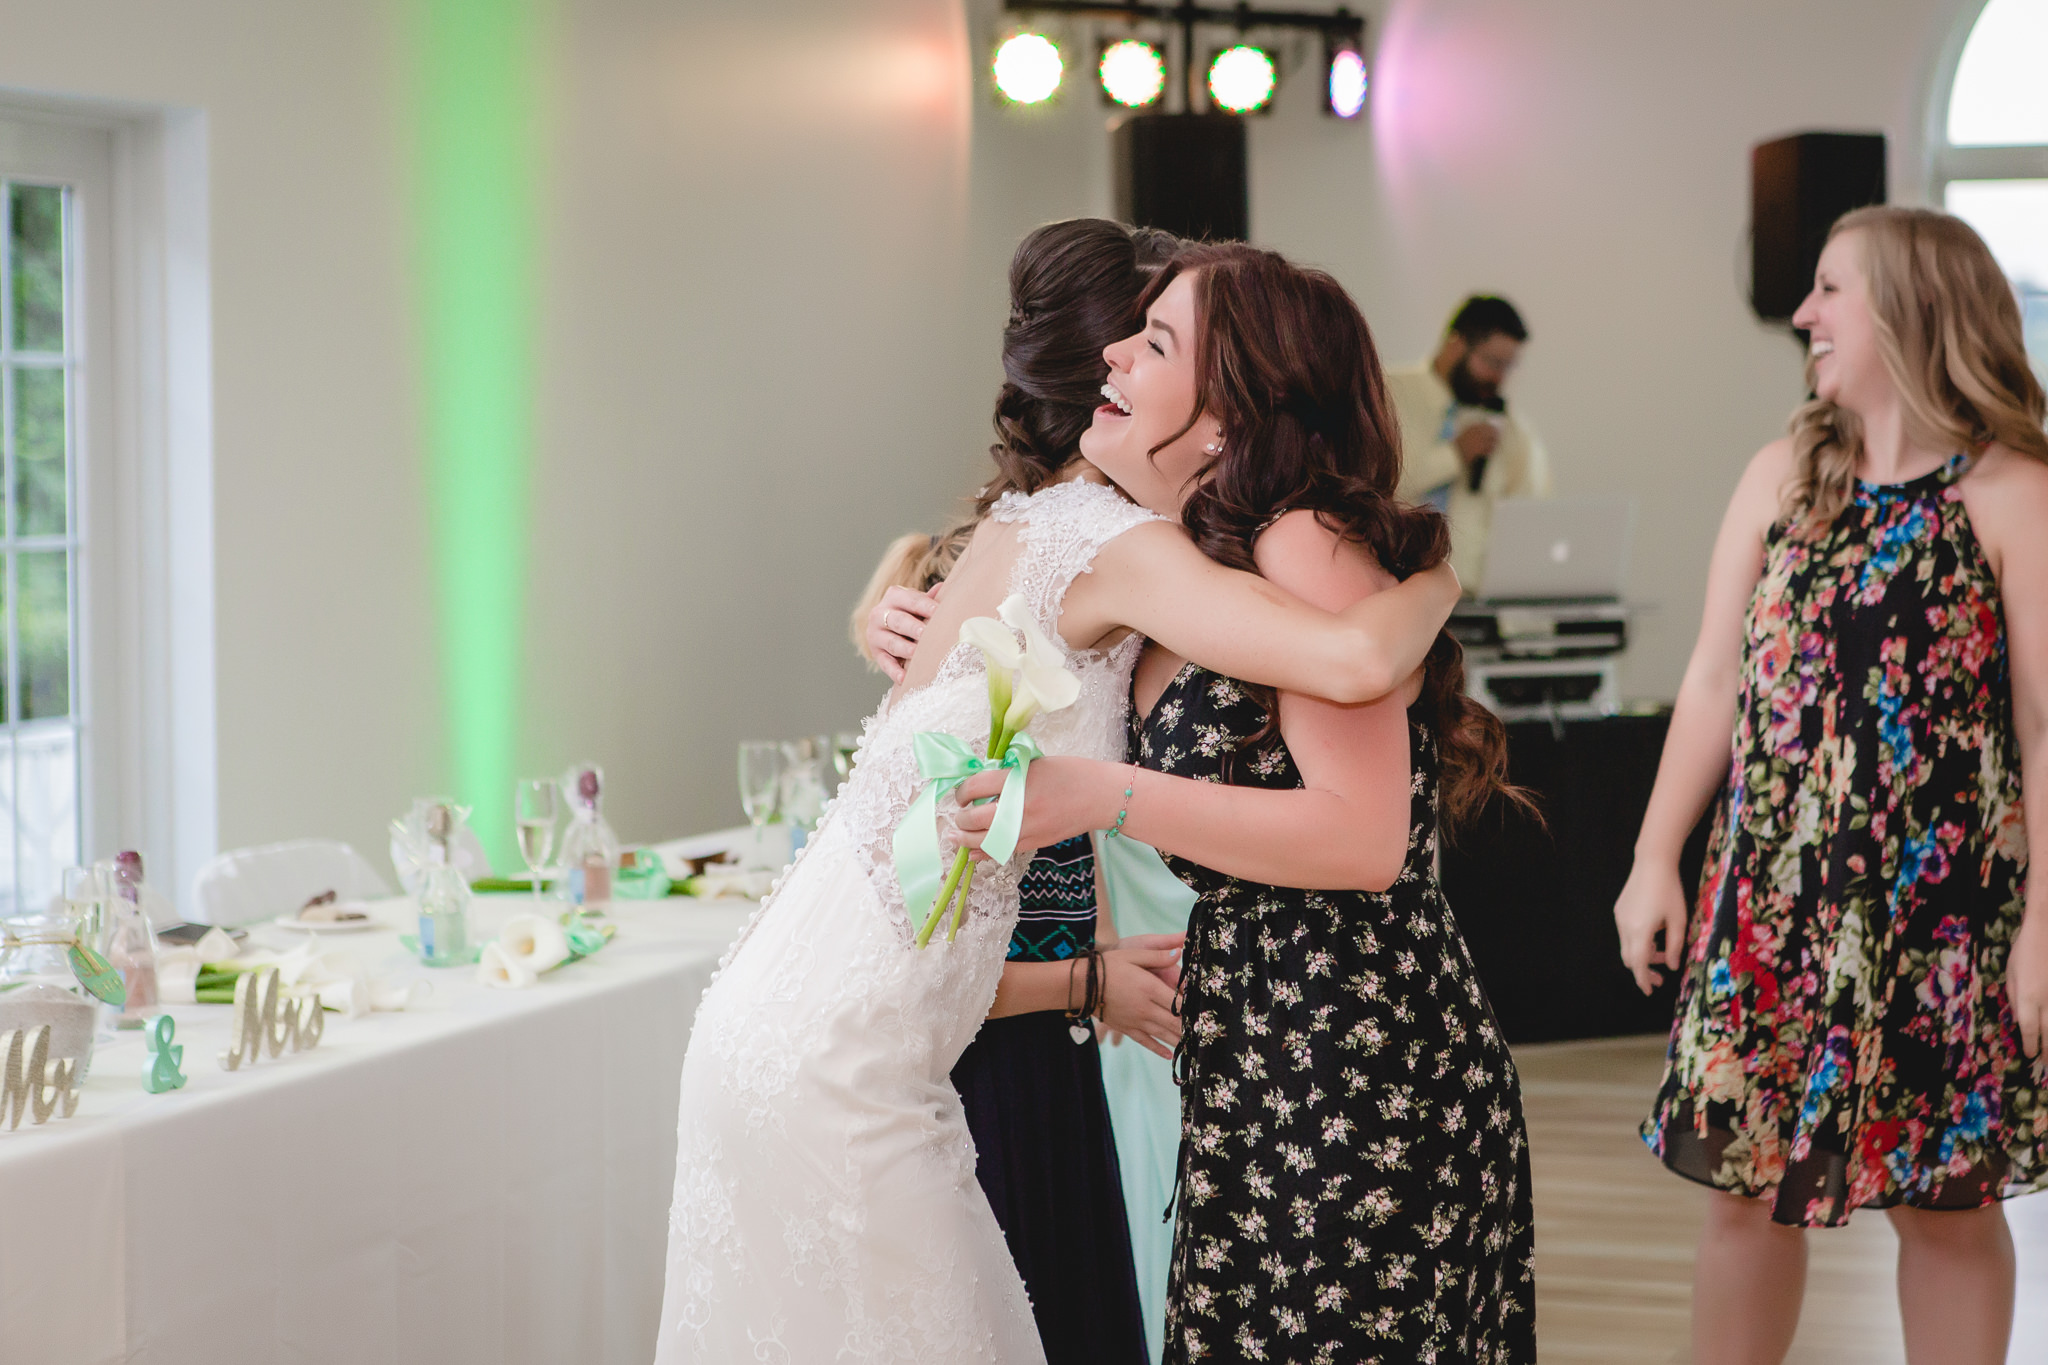 Bride hugs the single lady who caught the bouquet